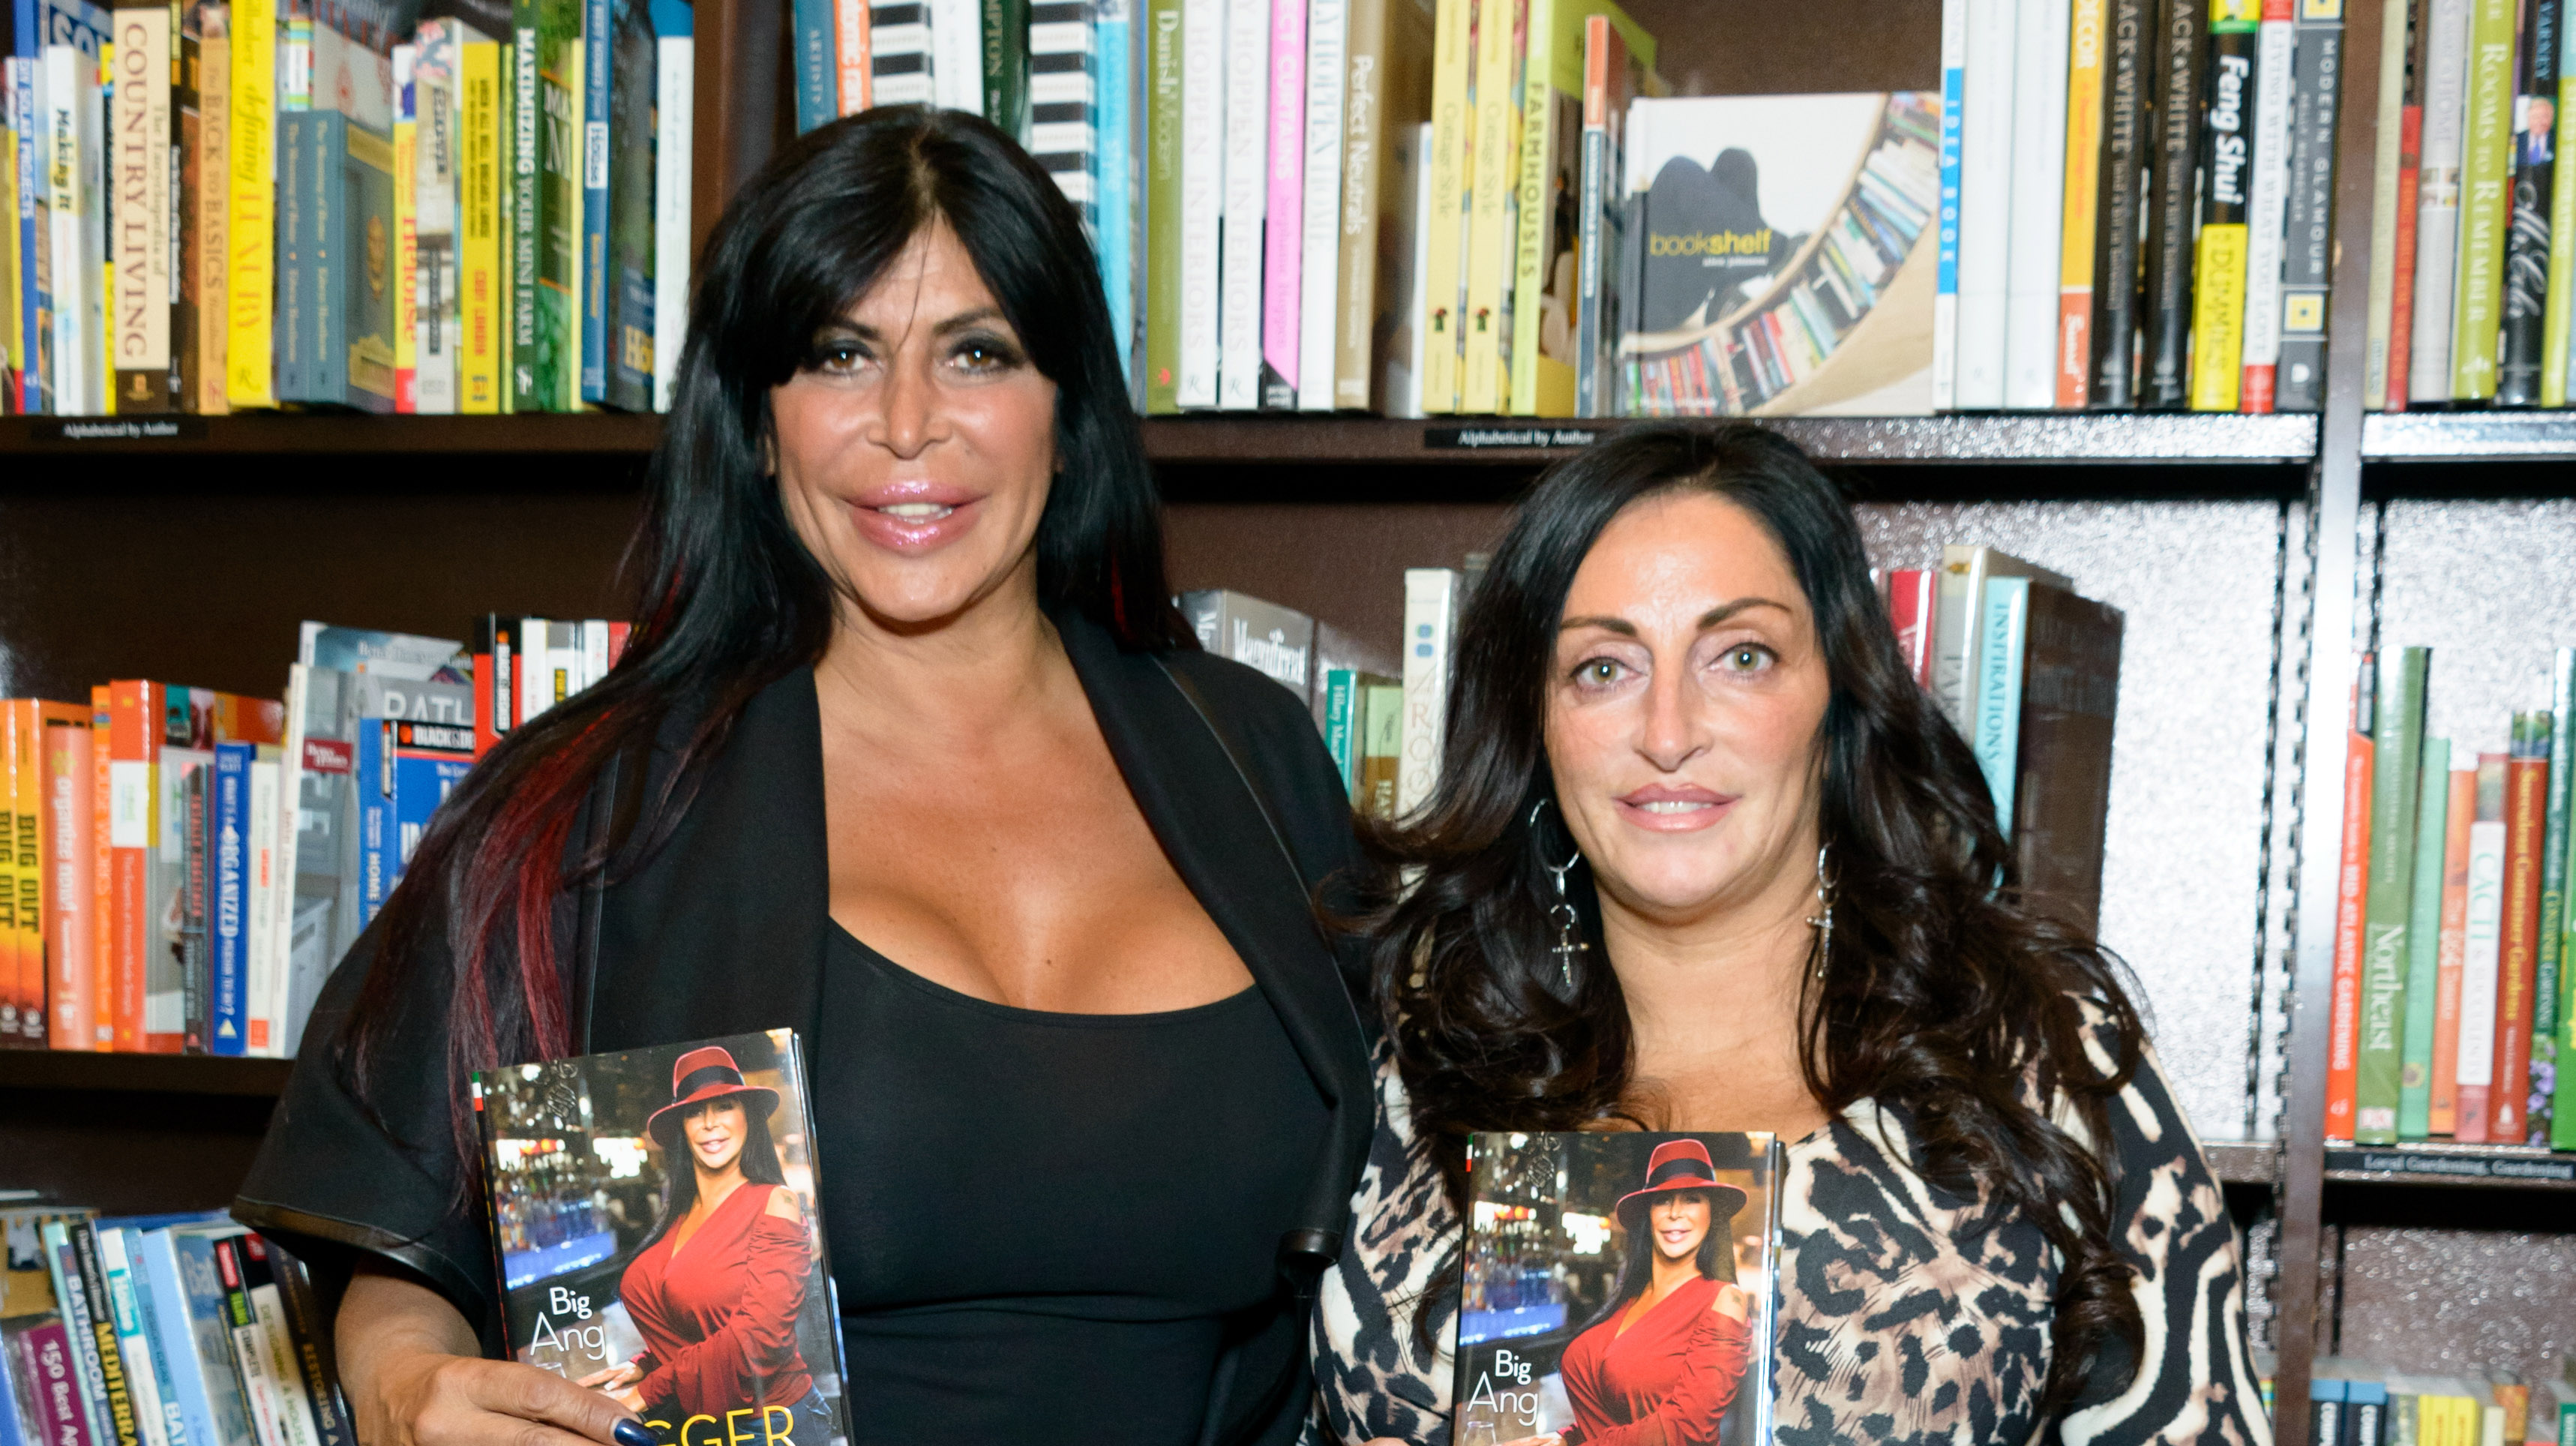 Who Is Janine Detore? Sister Of Mob Wives Star Angela